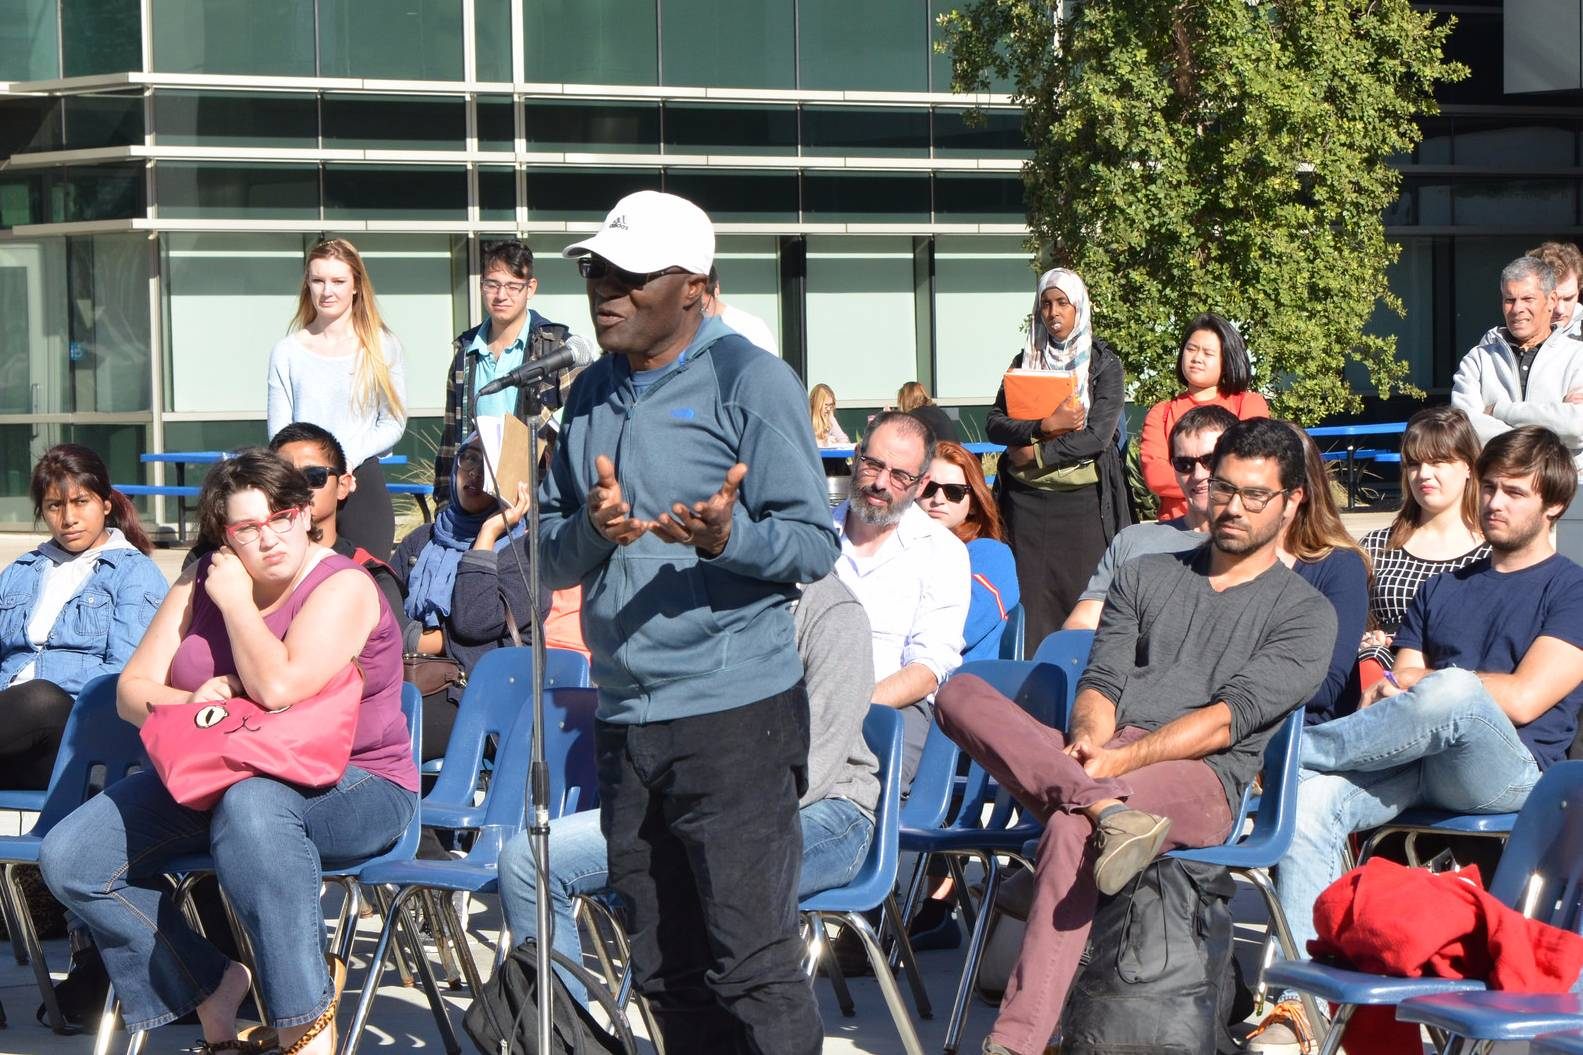 As a way to ease political tensions post-election, San Diego Mesa College faculty, staff and students participated in a Teach-in event in front of the LRC on Wednesday, Nov. 30.